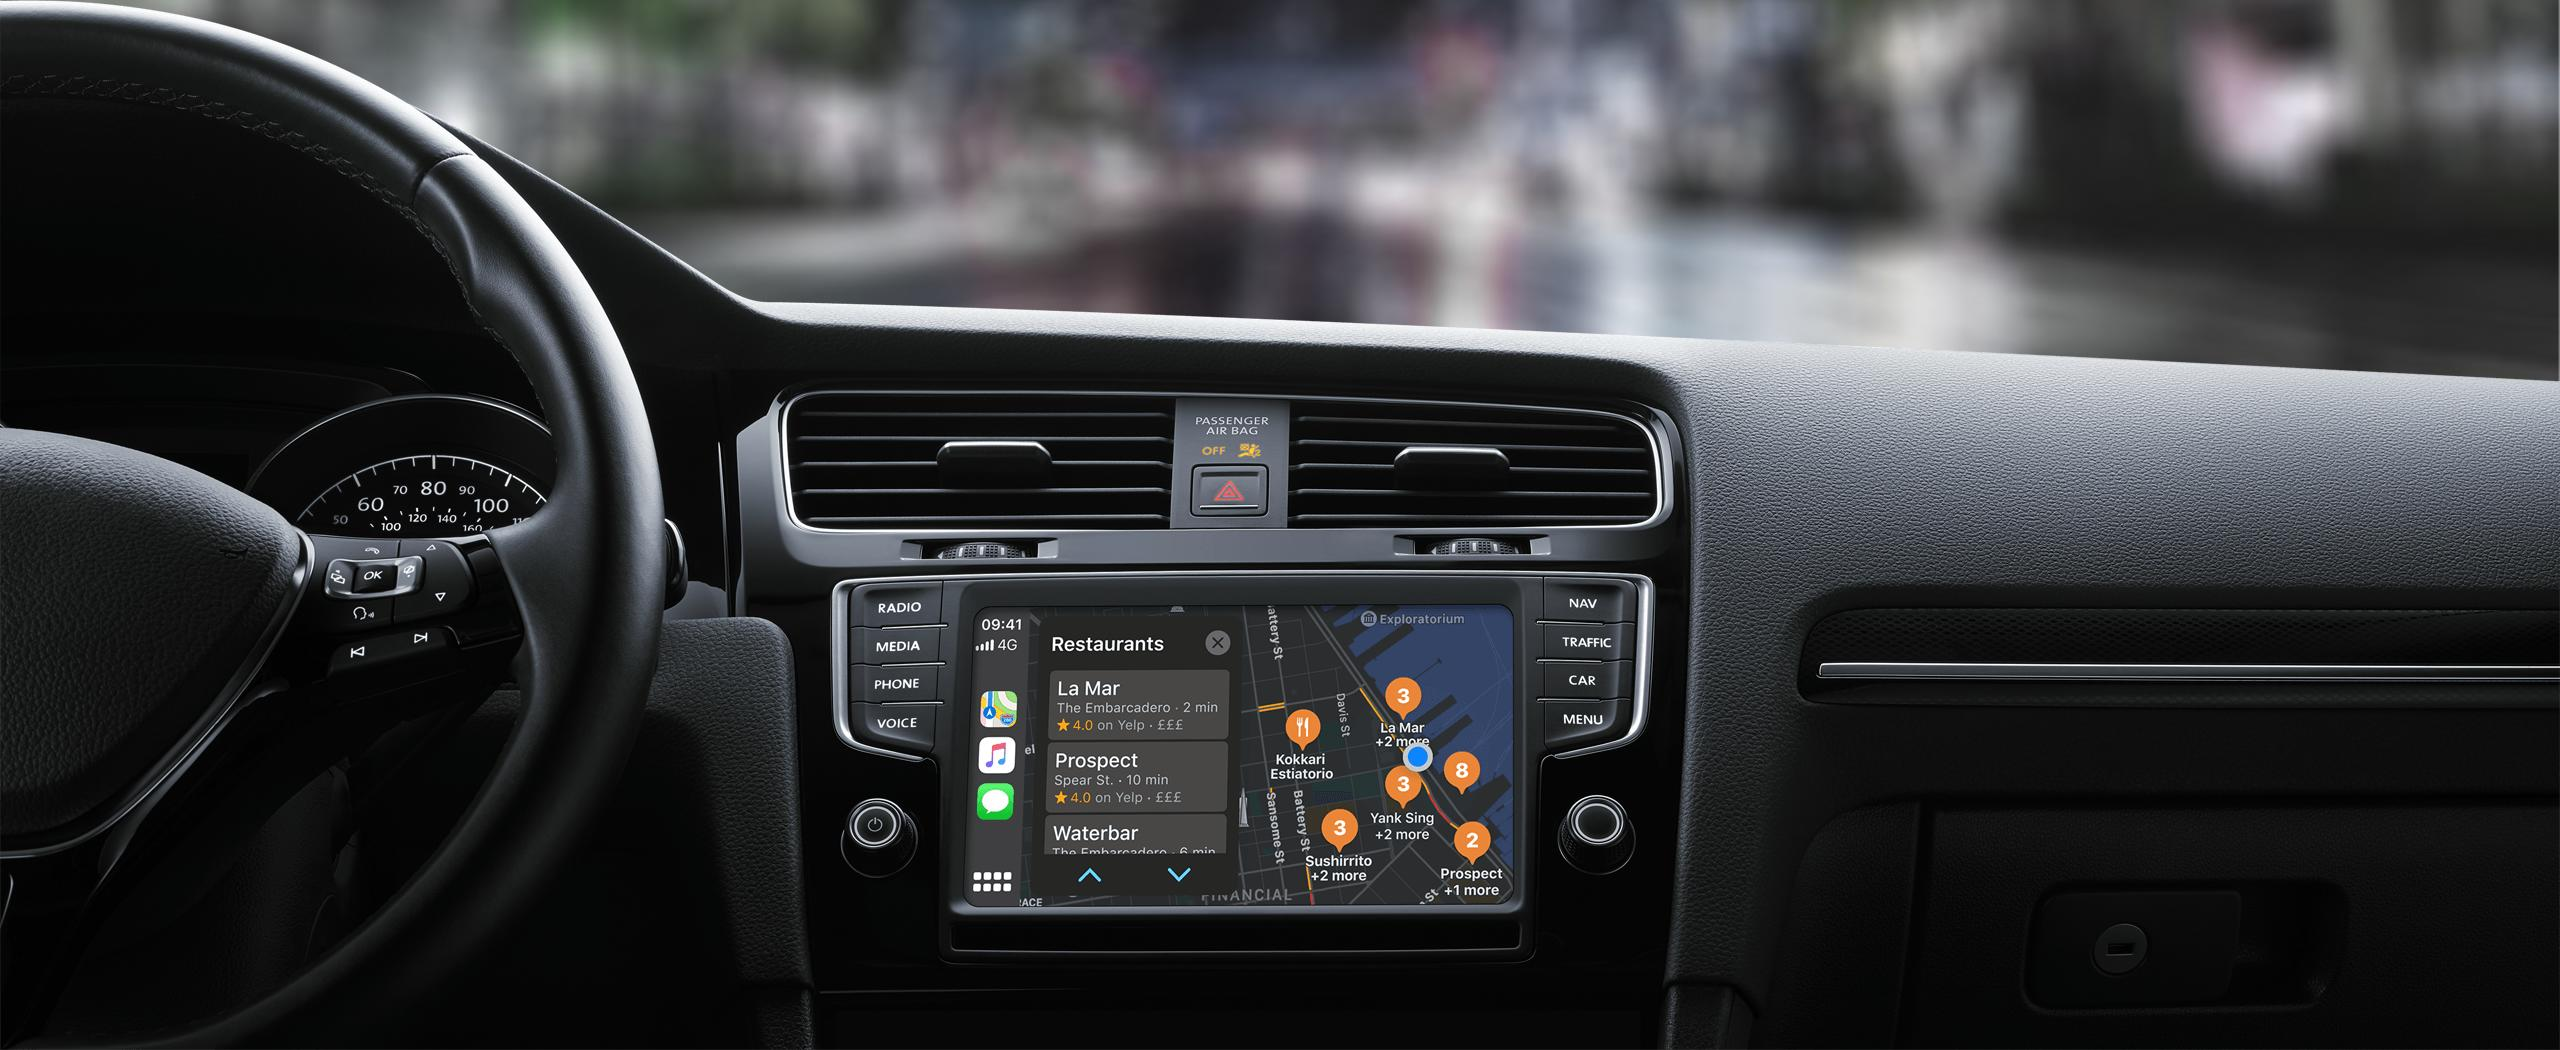 apple CarPlay installation nottingham apple maps